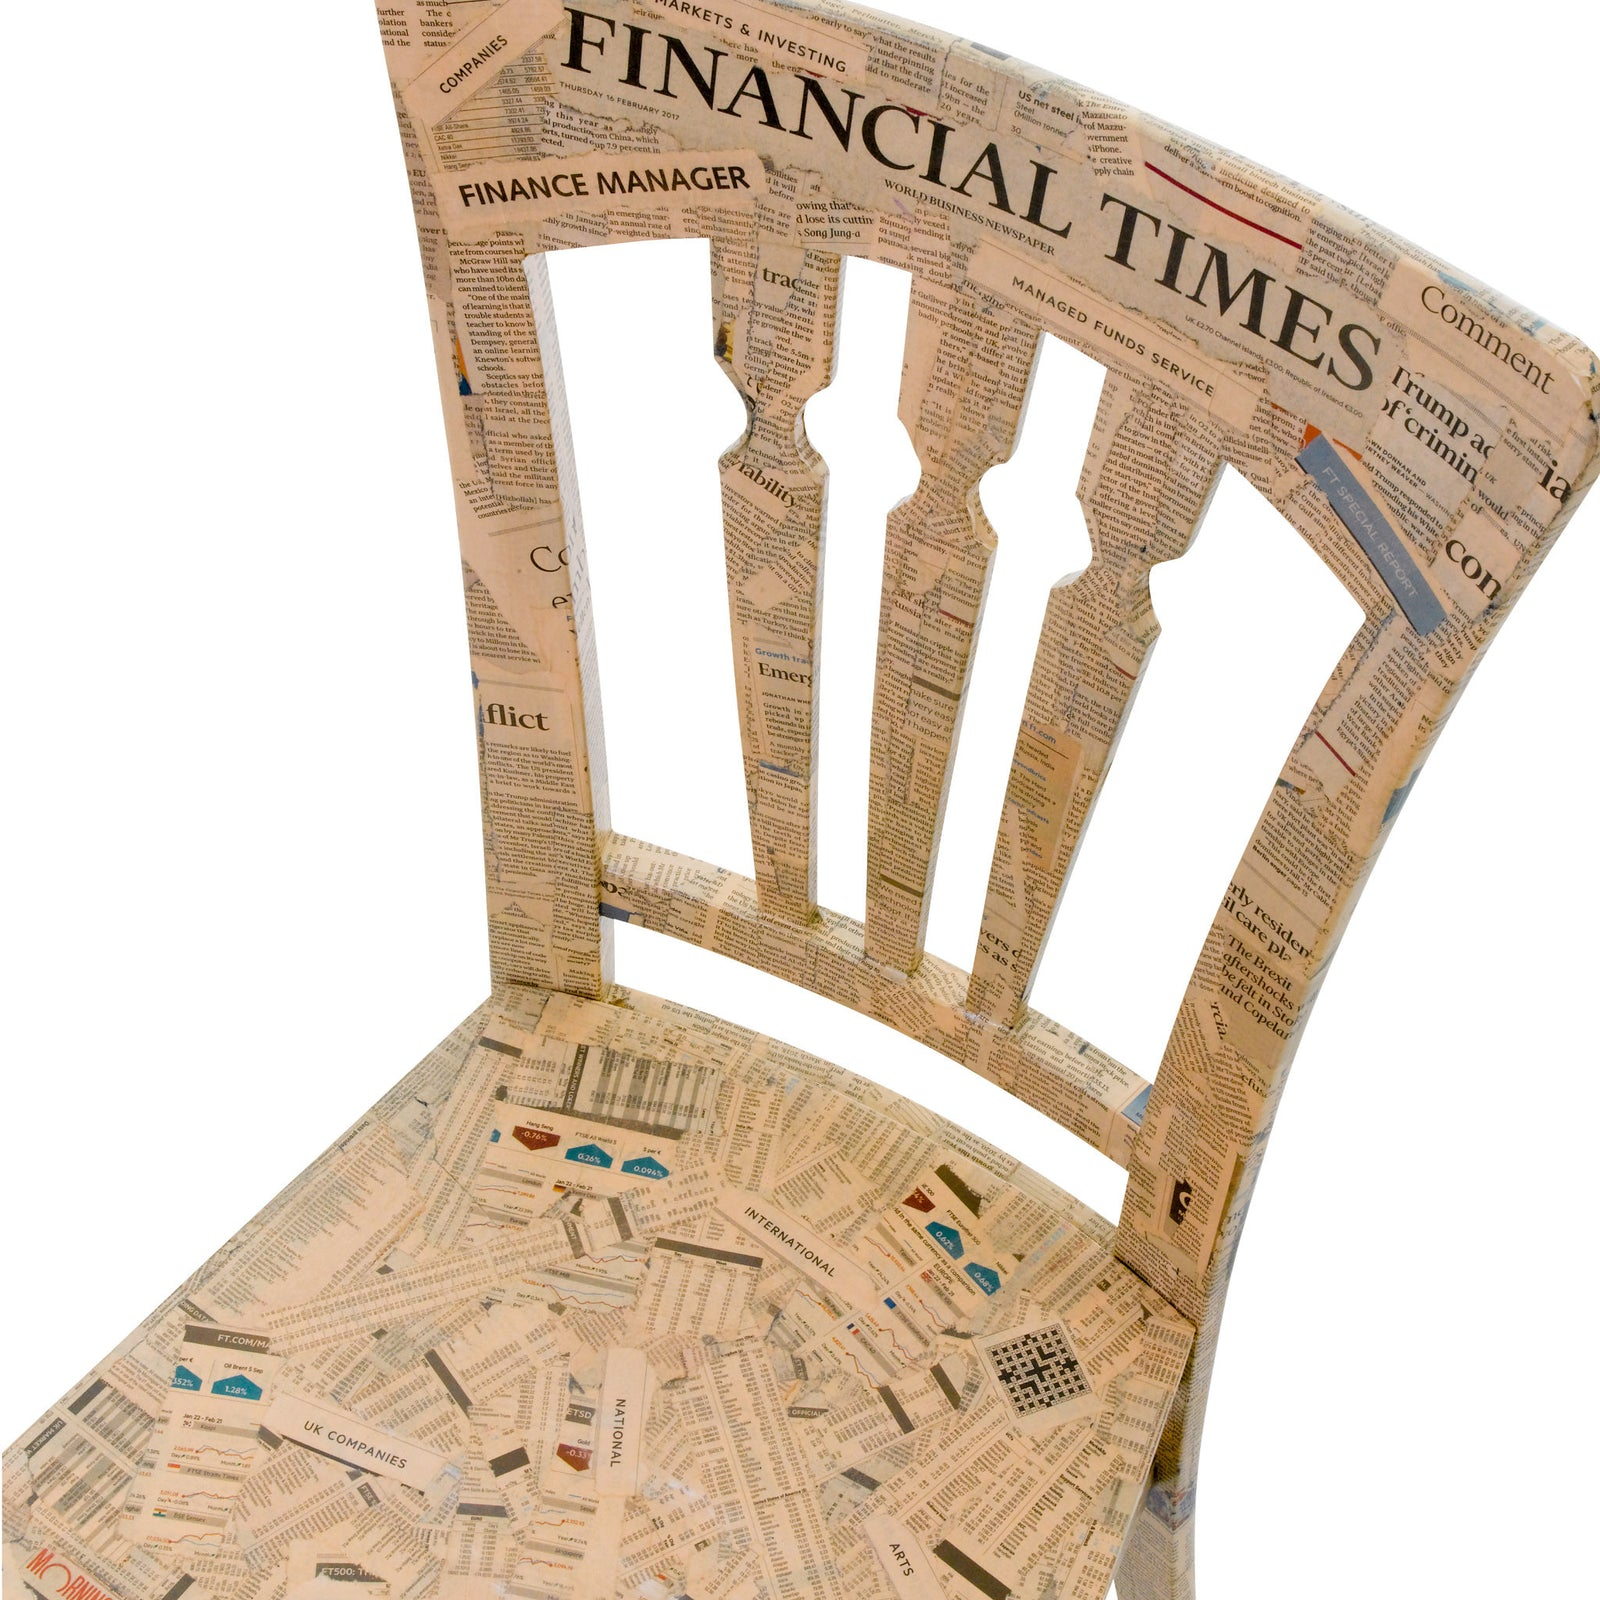 The Financial Times Chair - the prefect gift for the financier in your life!